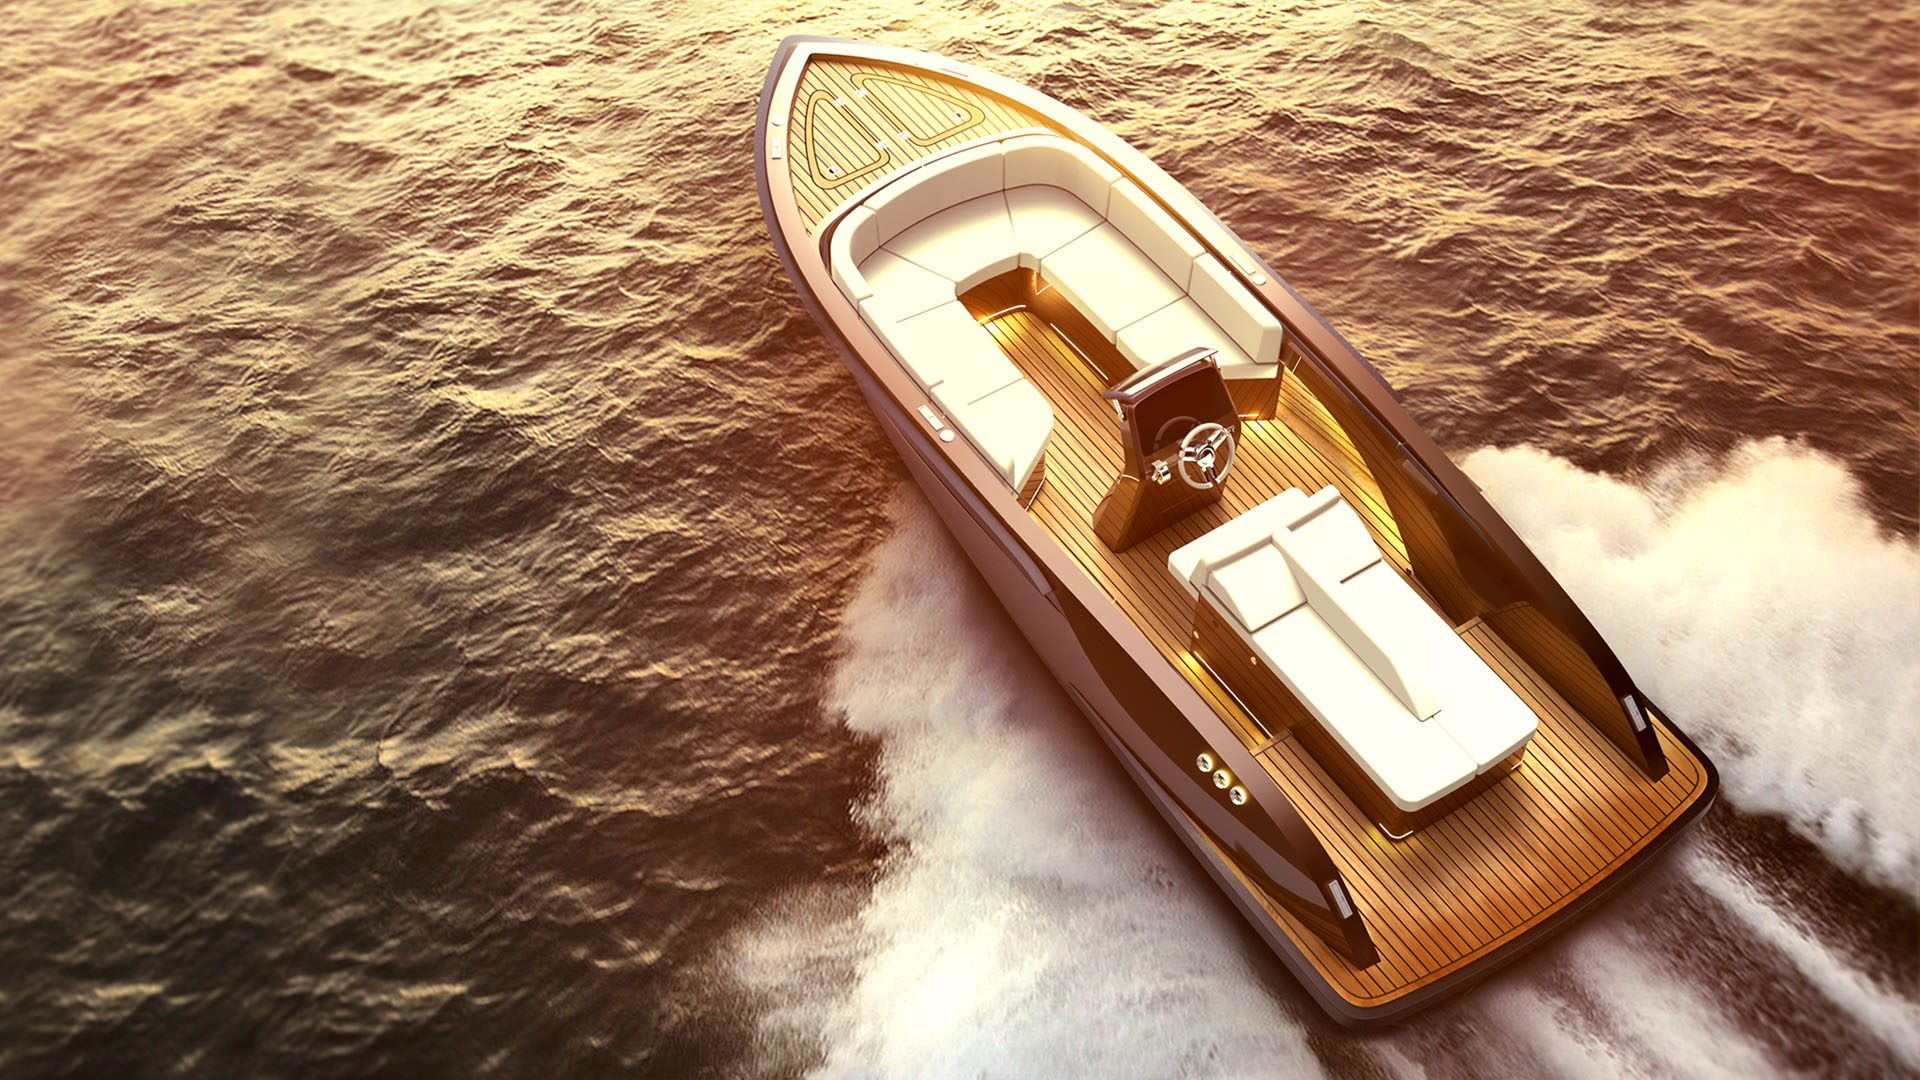 superyacht tenders, sports tender boats for water sports, wakeboarding design by Hamid Bekradi